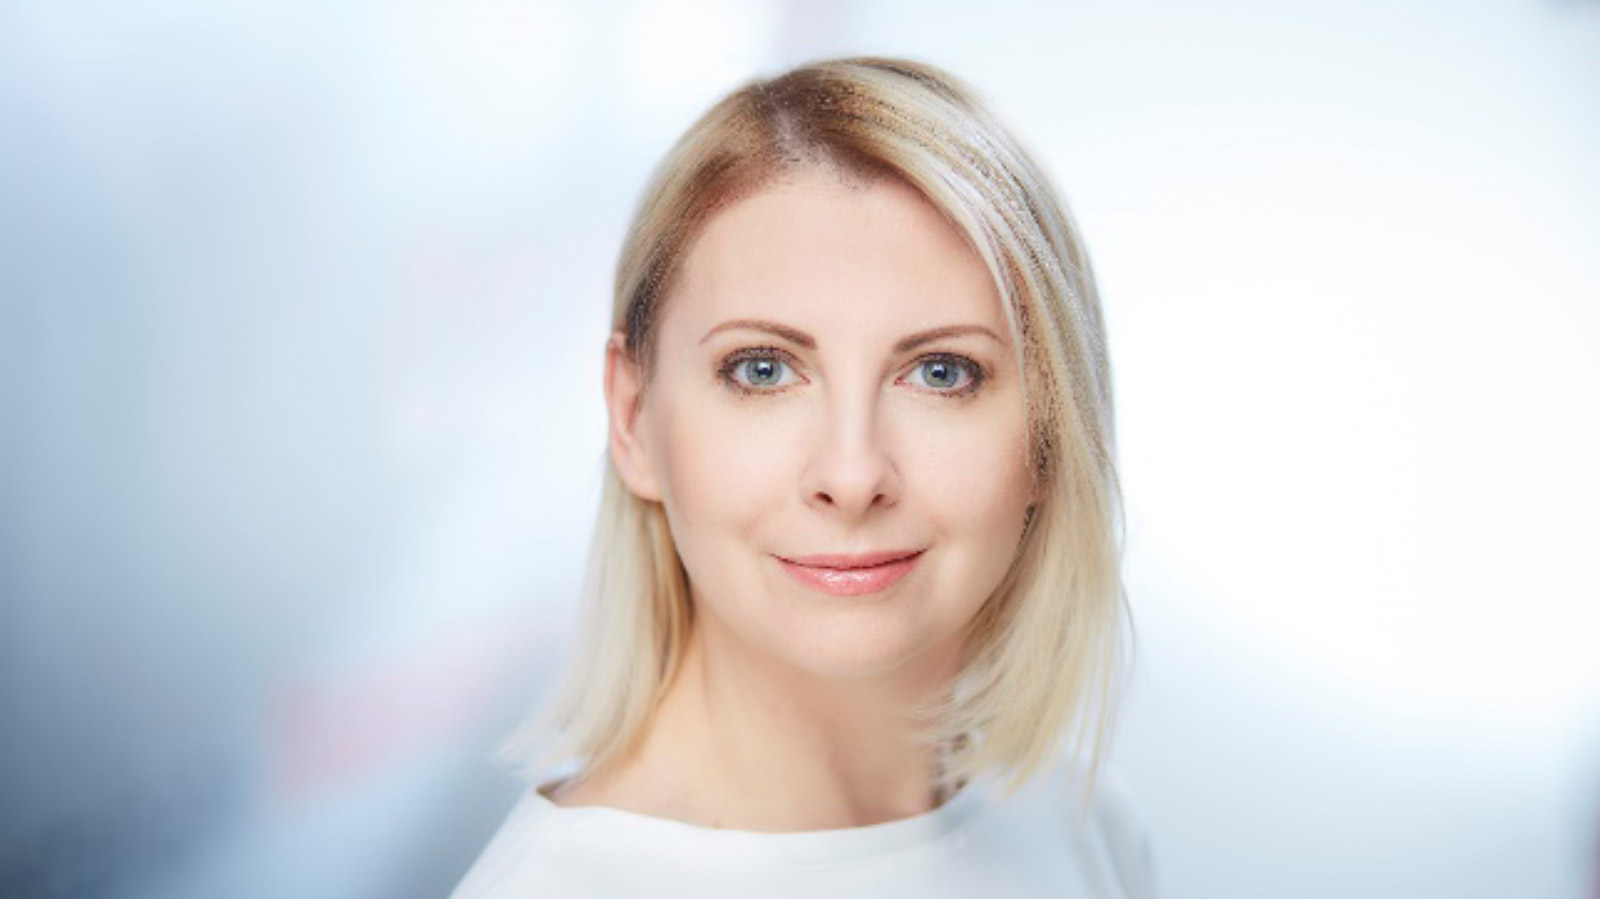 HENKEL z nową Dyrektor Marketingu Henkel mediarun Monika Banaś Jankowska henkel dyrektor marketingu 2019